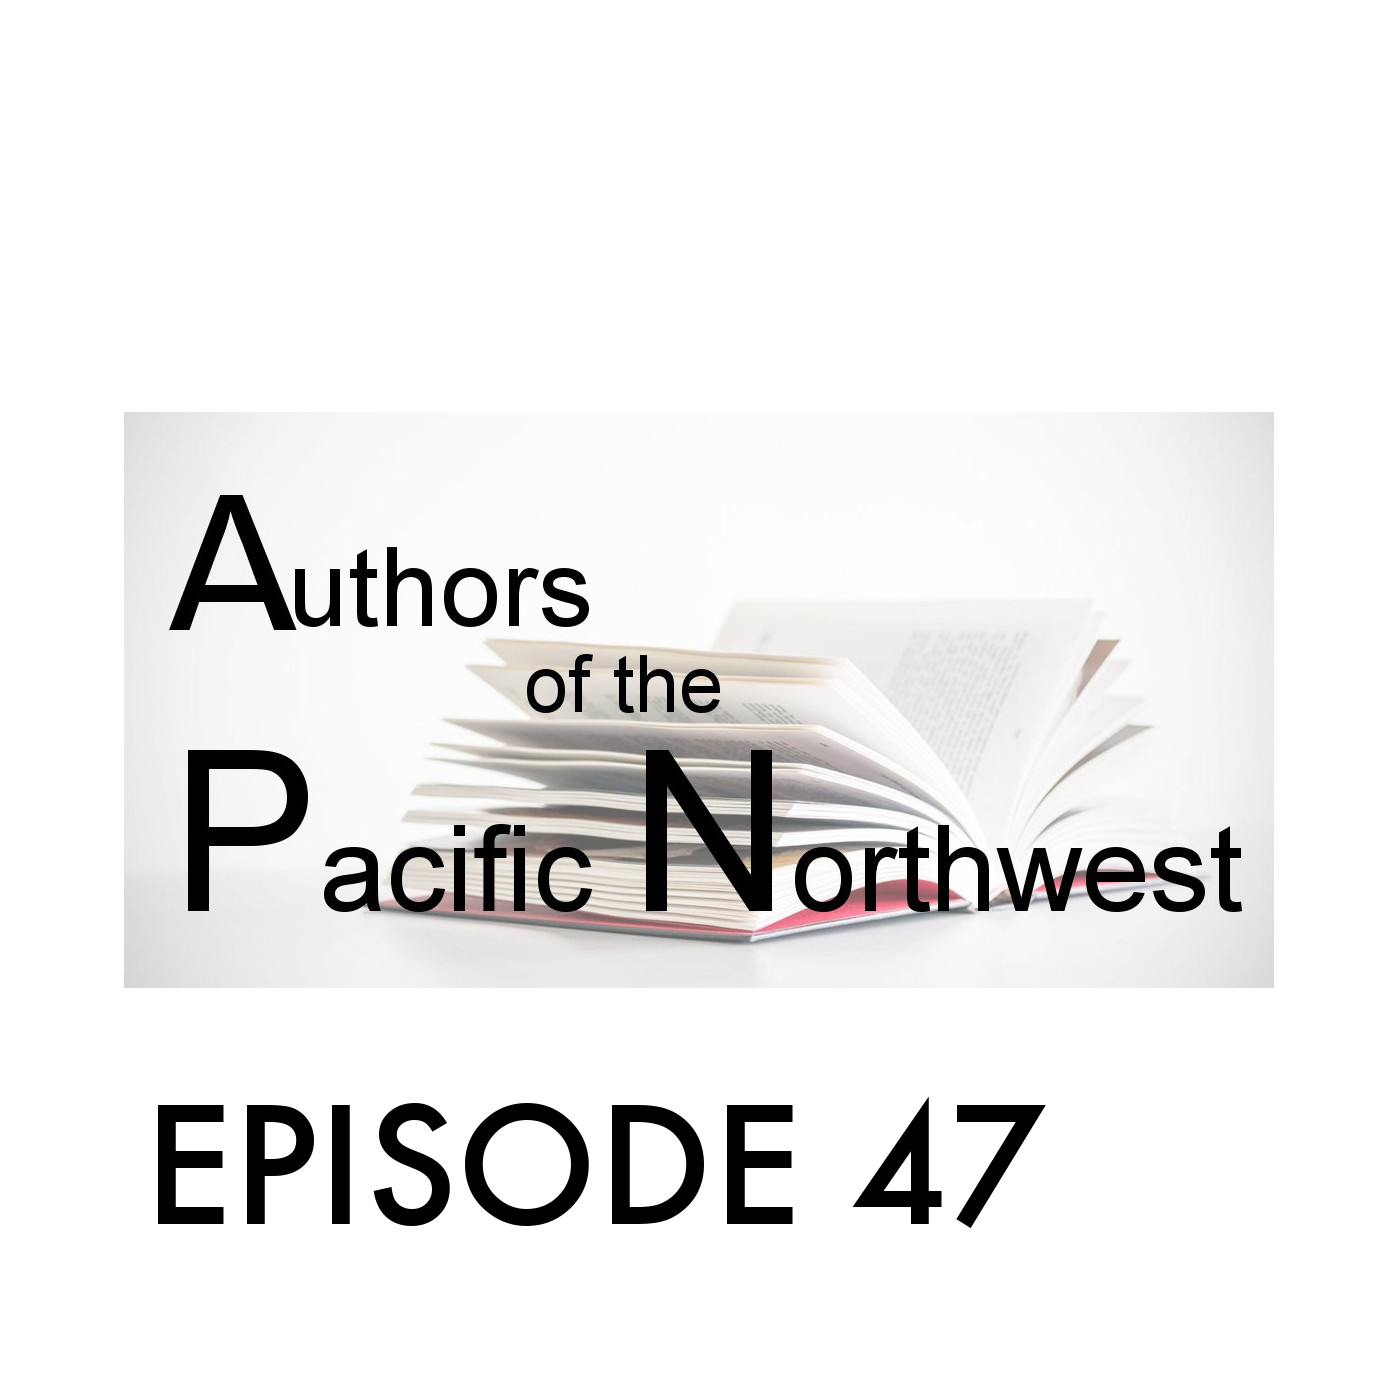 Episode 47: Karen Eisenbrey; Seattle Fantasy YA Fiction Author from Not a Pipe Publishing